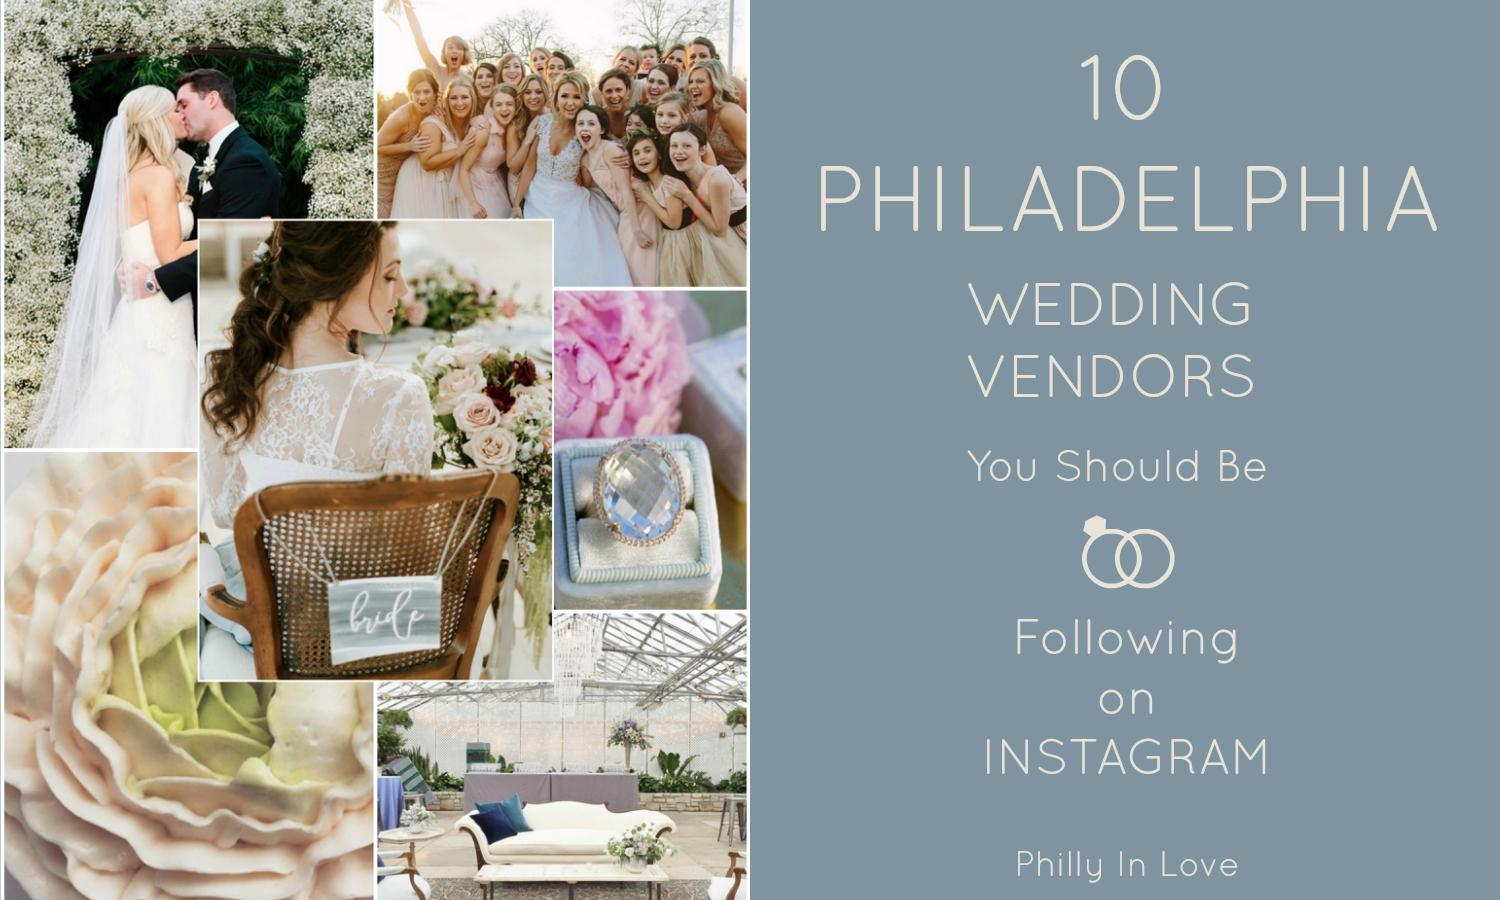 10PhiladelphiaWeddingVendorsInstagram